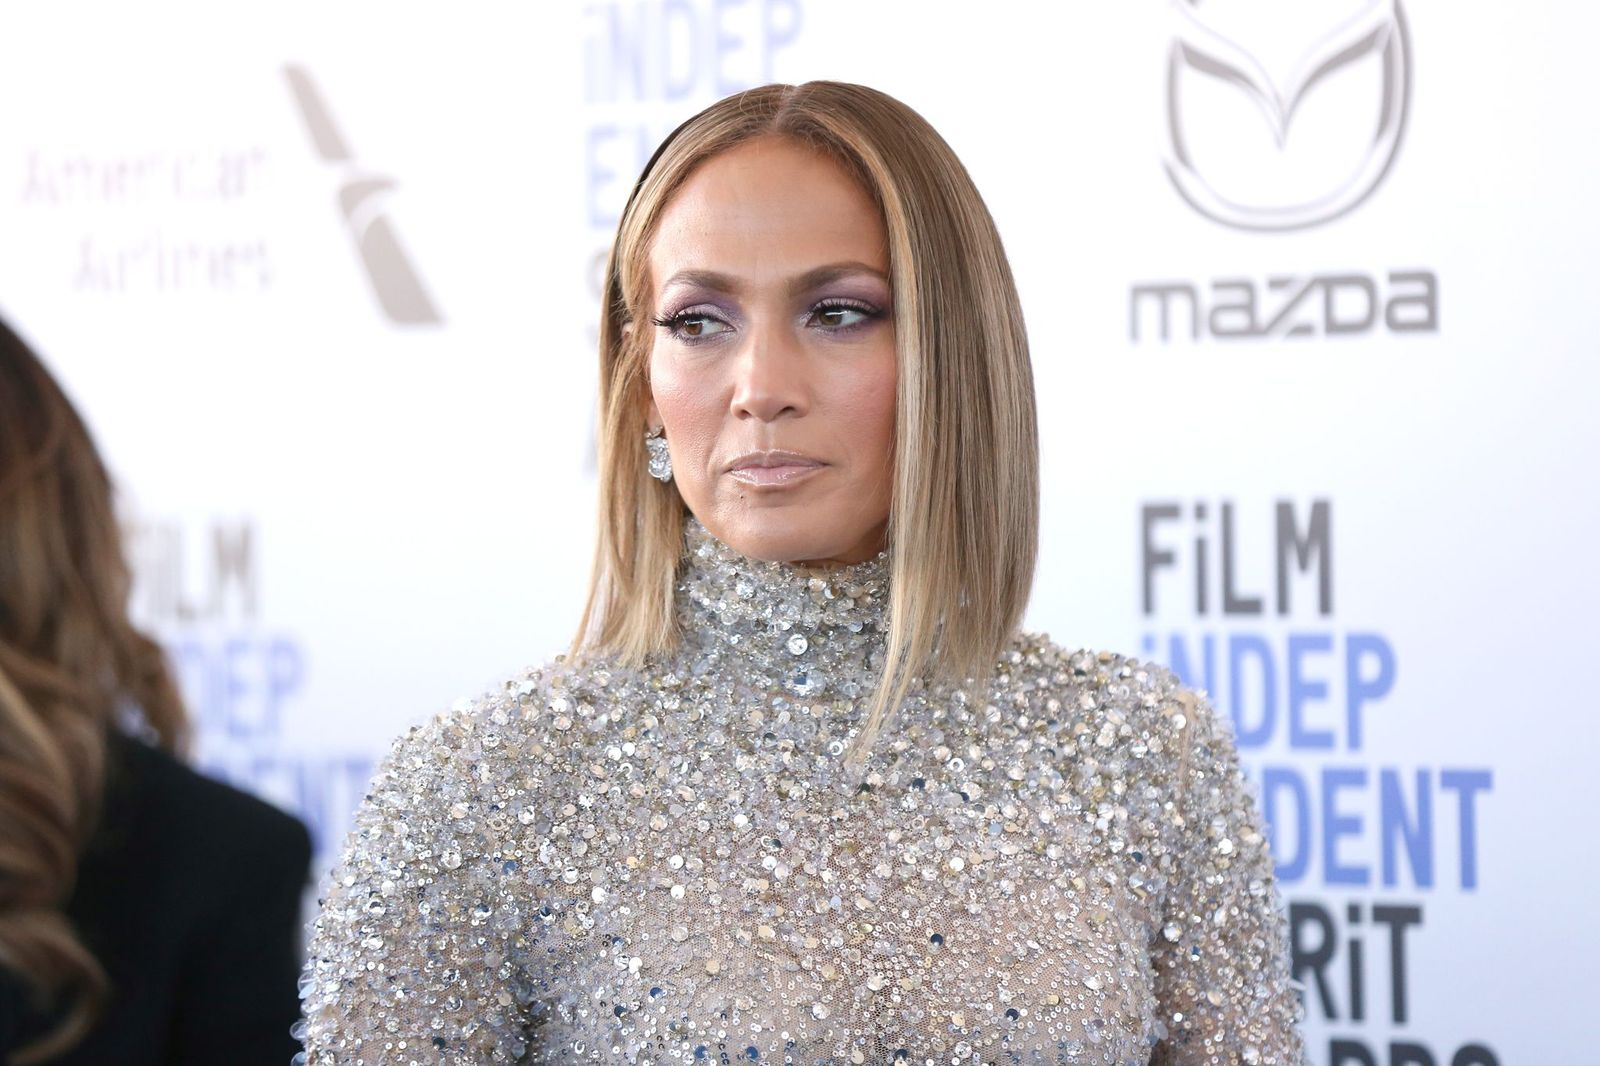 Jennifer Lopez at the 2020 Film Independent Spirit Awards on February 08, 2020 | Photo: Getty Images